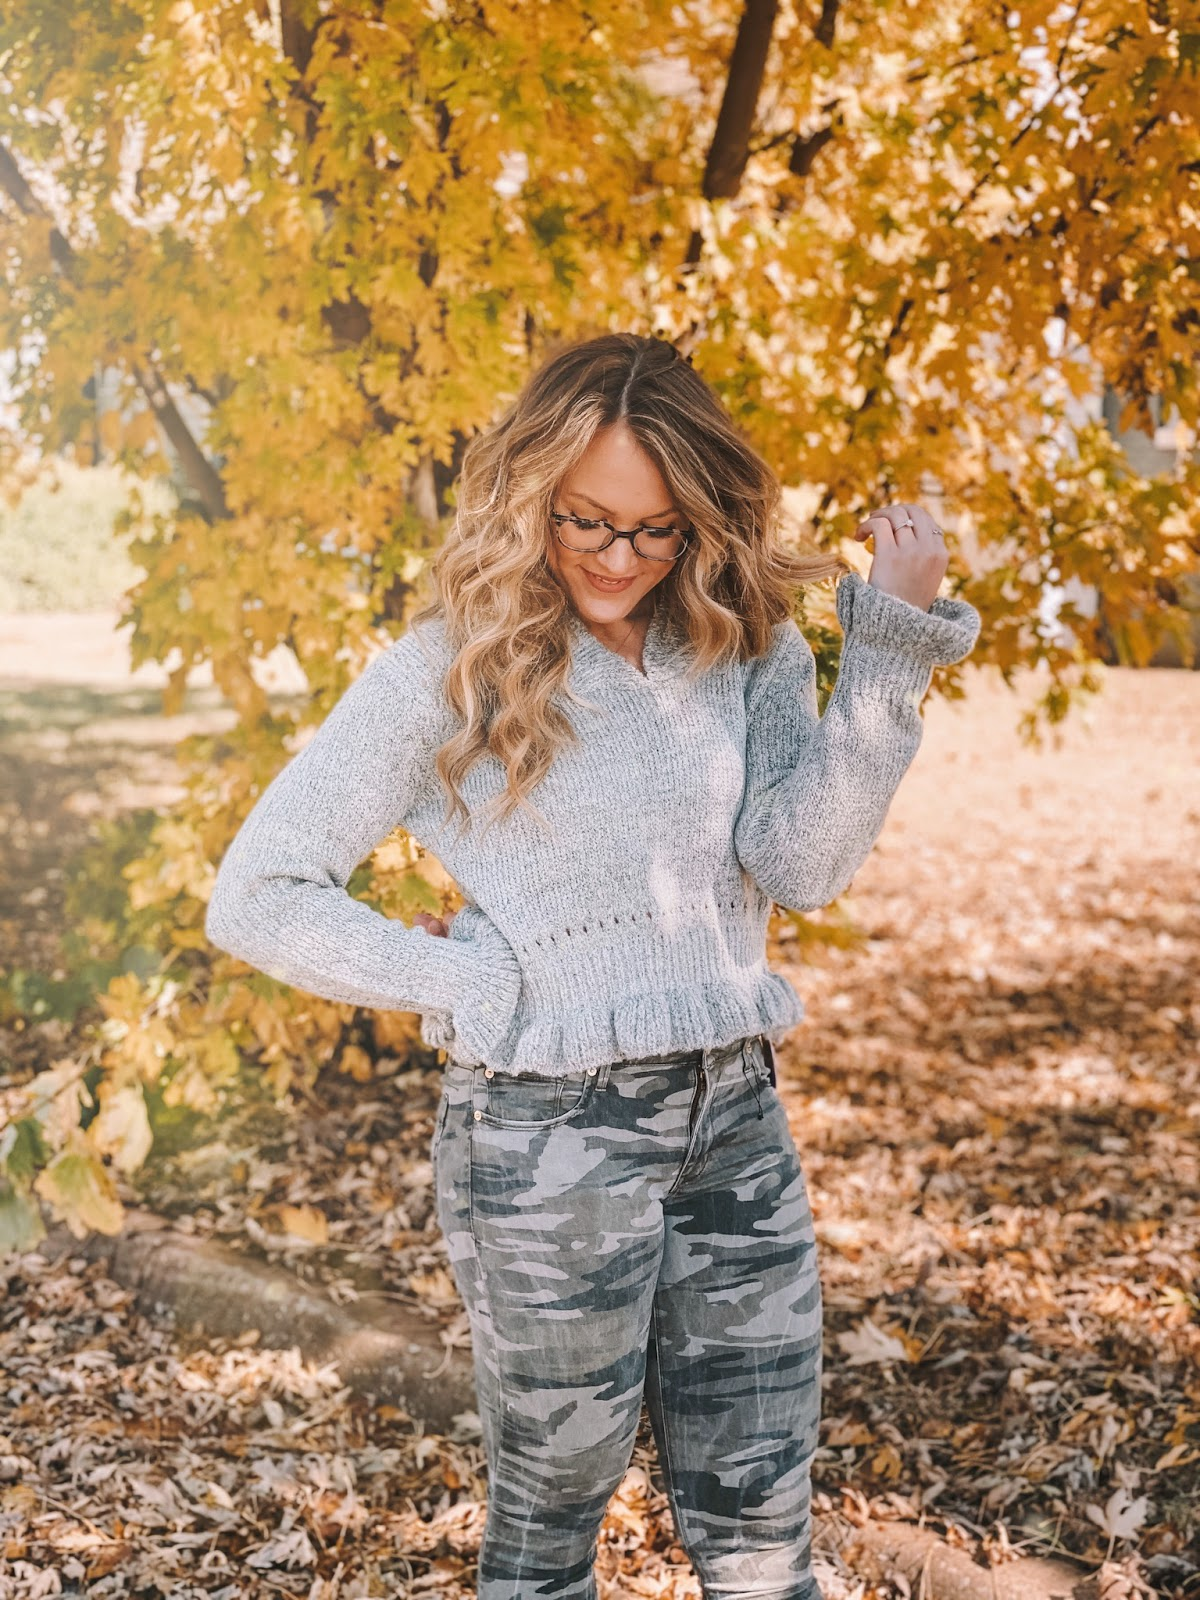 Oklahoma blogger Amanda Martin wears a camo jeans and grey ruffle sweater for thanksgiving